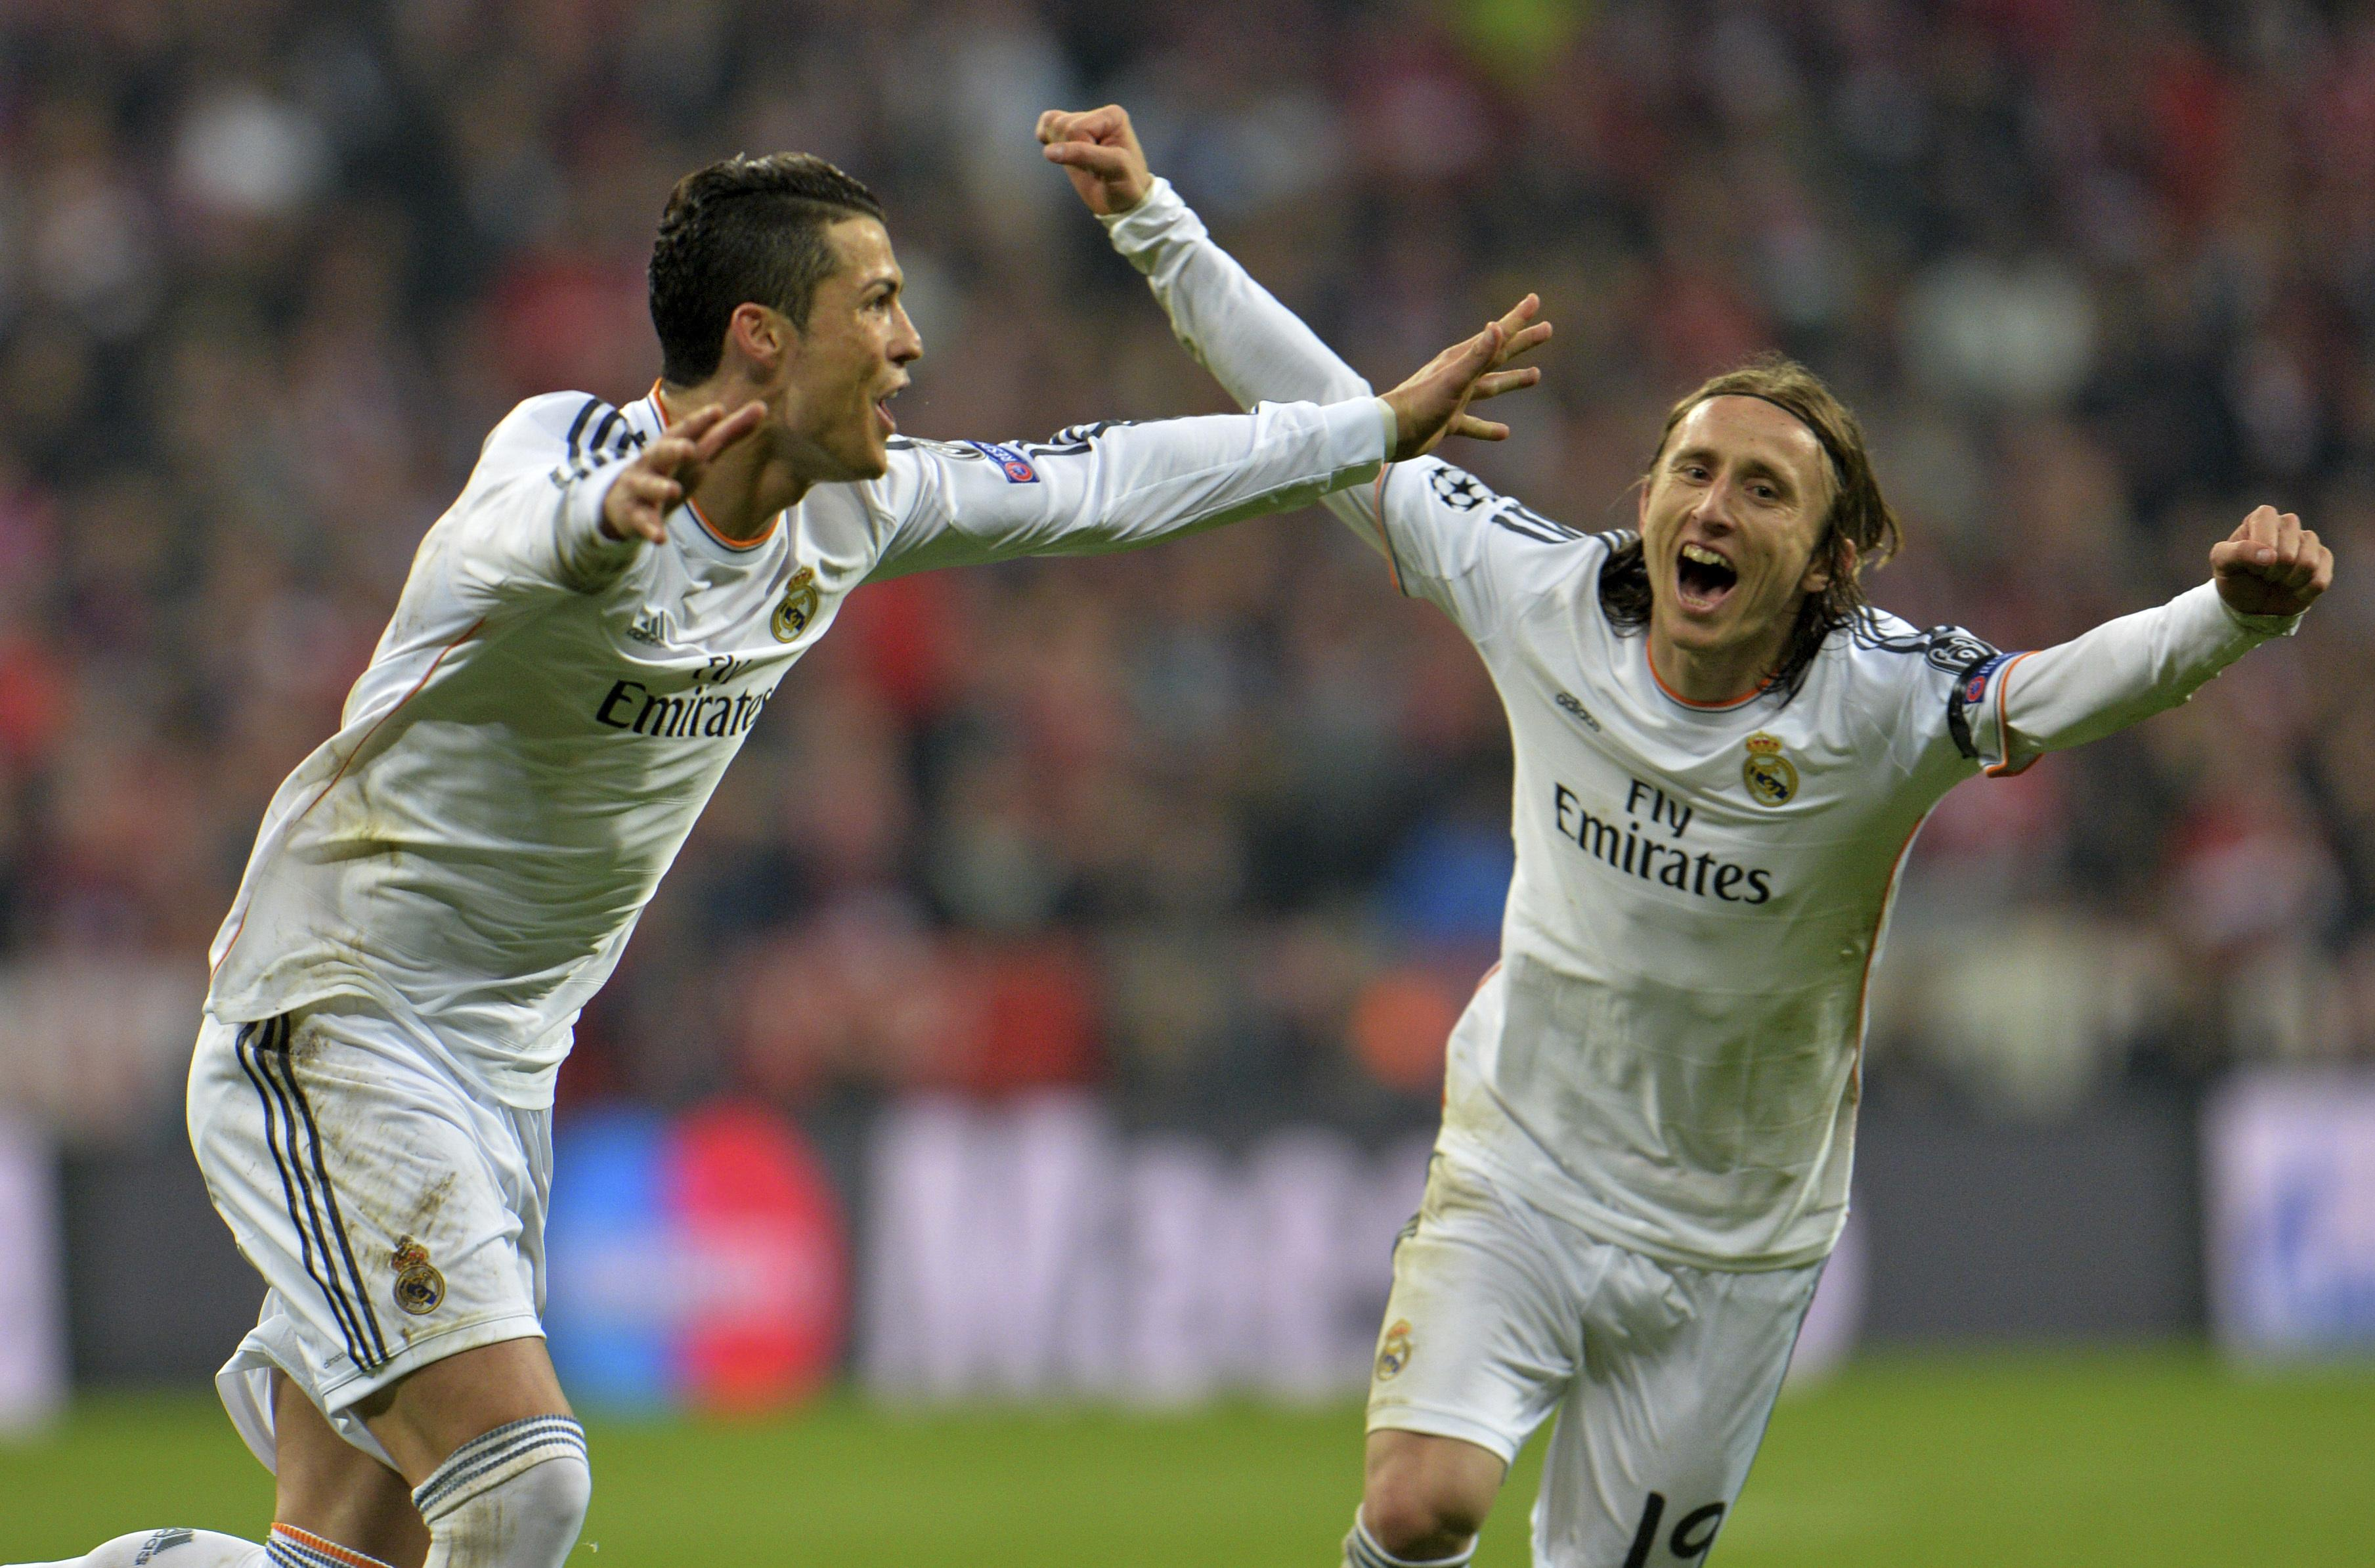 Spain_champions_league_final_real_madrid_players_11608